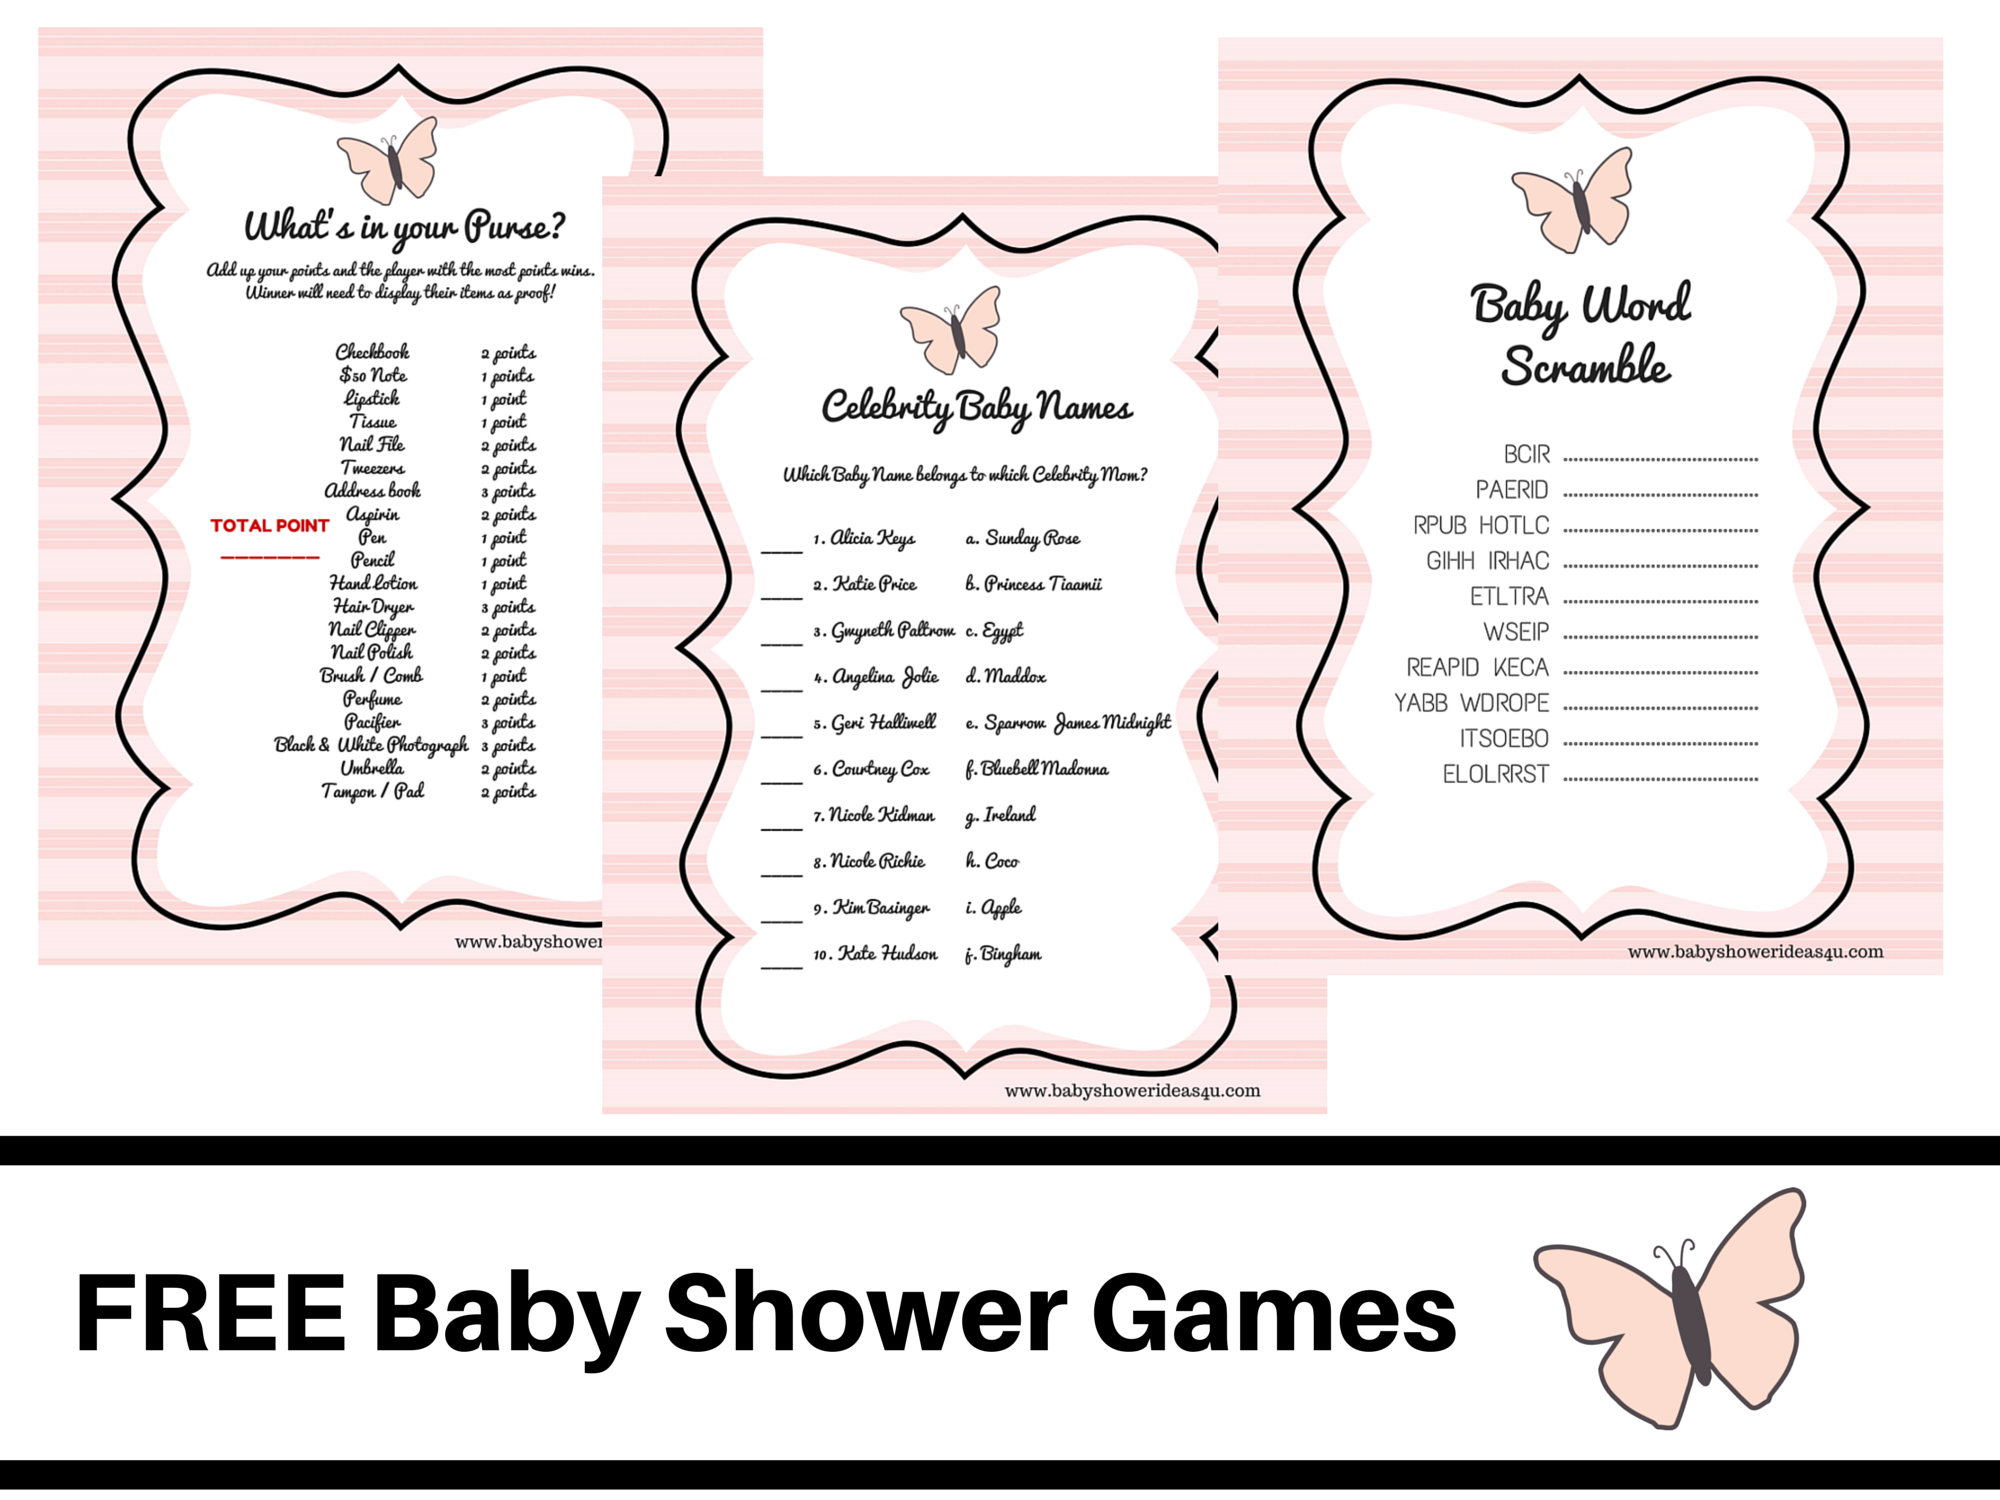 Butterfly-Theme-Baby-Shower-Free-Printable-Baby-Shower-Games-Baby - Free Printable Baby Shower Game What's In Your Purse